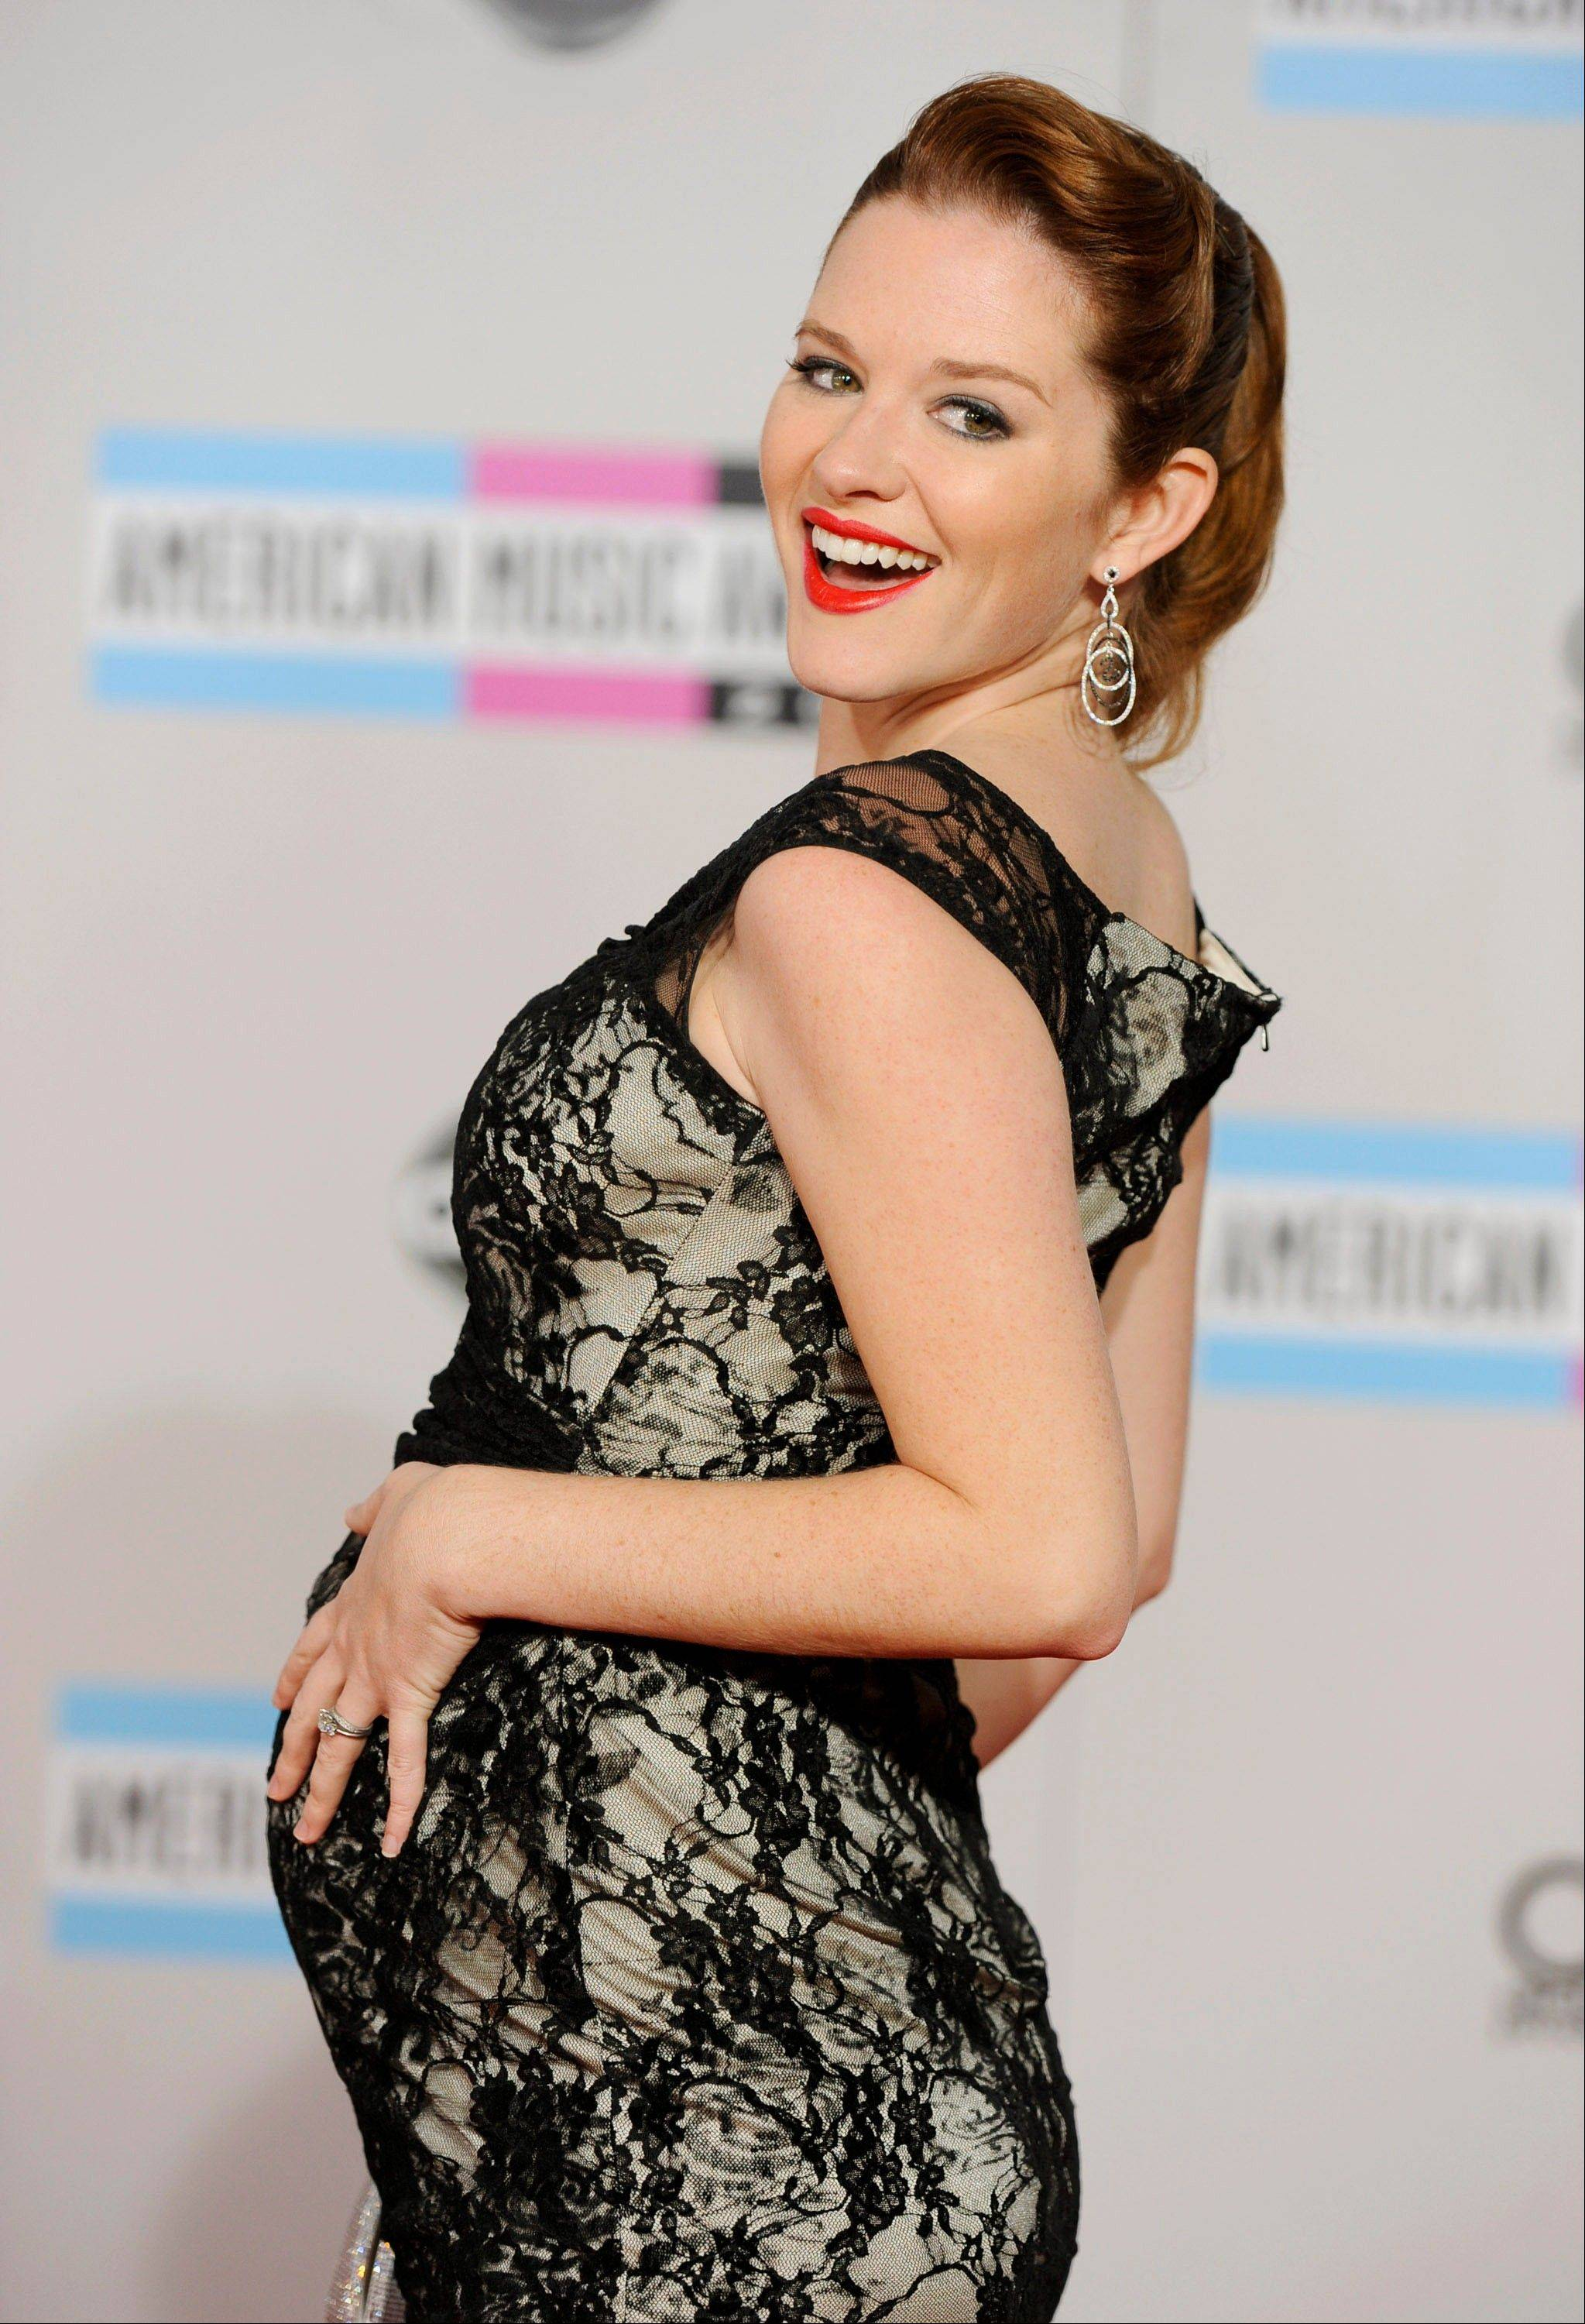 Sarah Drew arrives at the 39th Annual American Music Awards on Sunday, Nov. 20, 2011 in Los Angeles.